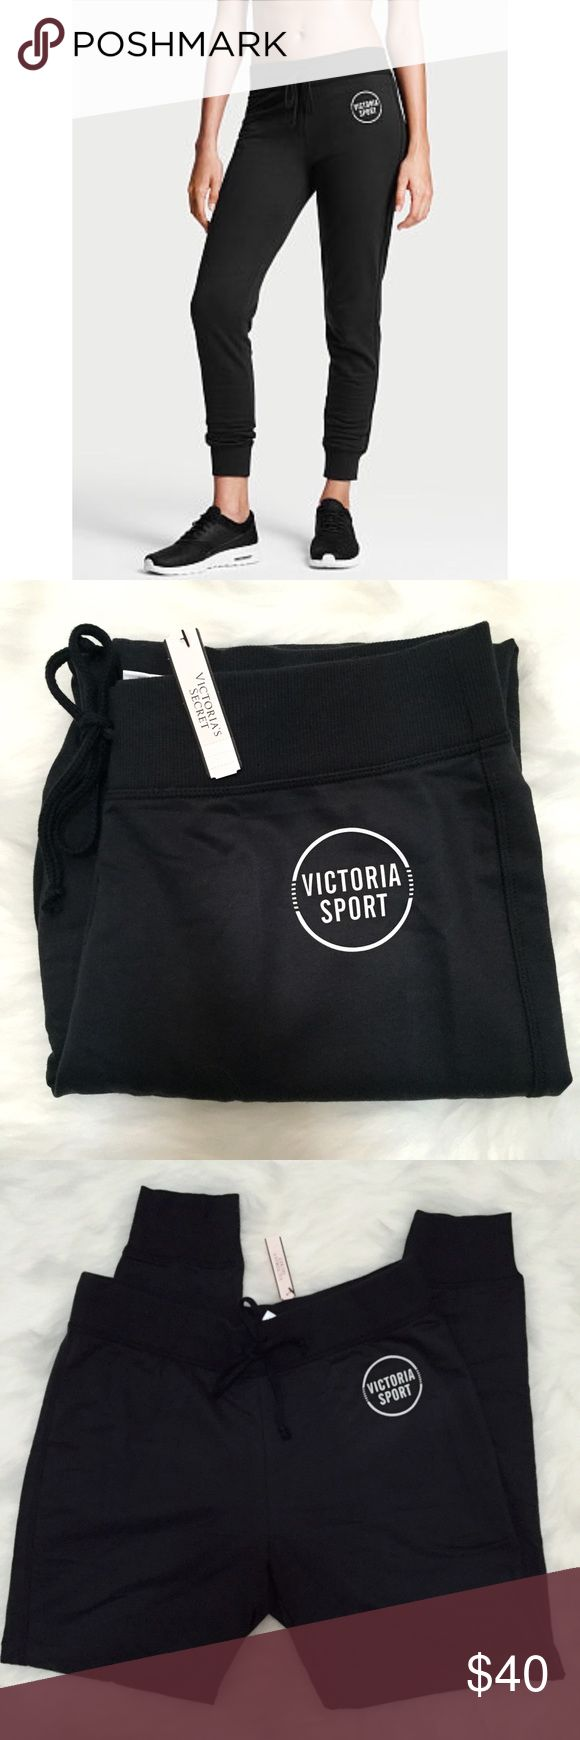 Victoria's Secret Sport Black Fleece Jogger Pants Brand new with tags, women's size Small. These Victoria's Secret Sport Black Fleece Drawstring Joggers are perfect for the gym, running errands or lounging around! So comfortable and soft! Has the Victoria Sport logo on the front. Victoria's Secret Pants Track Pants & Joggers